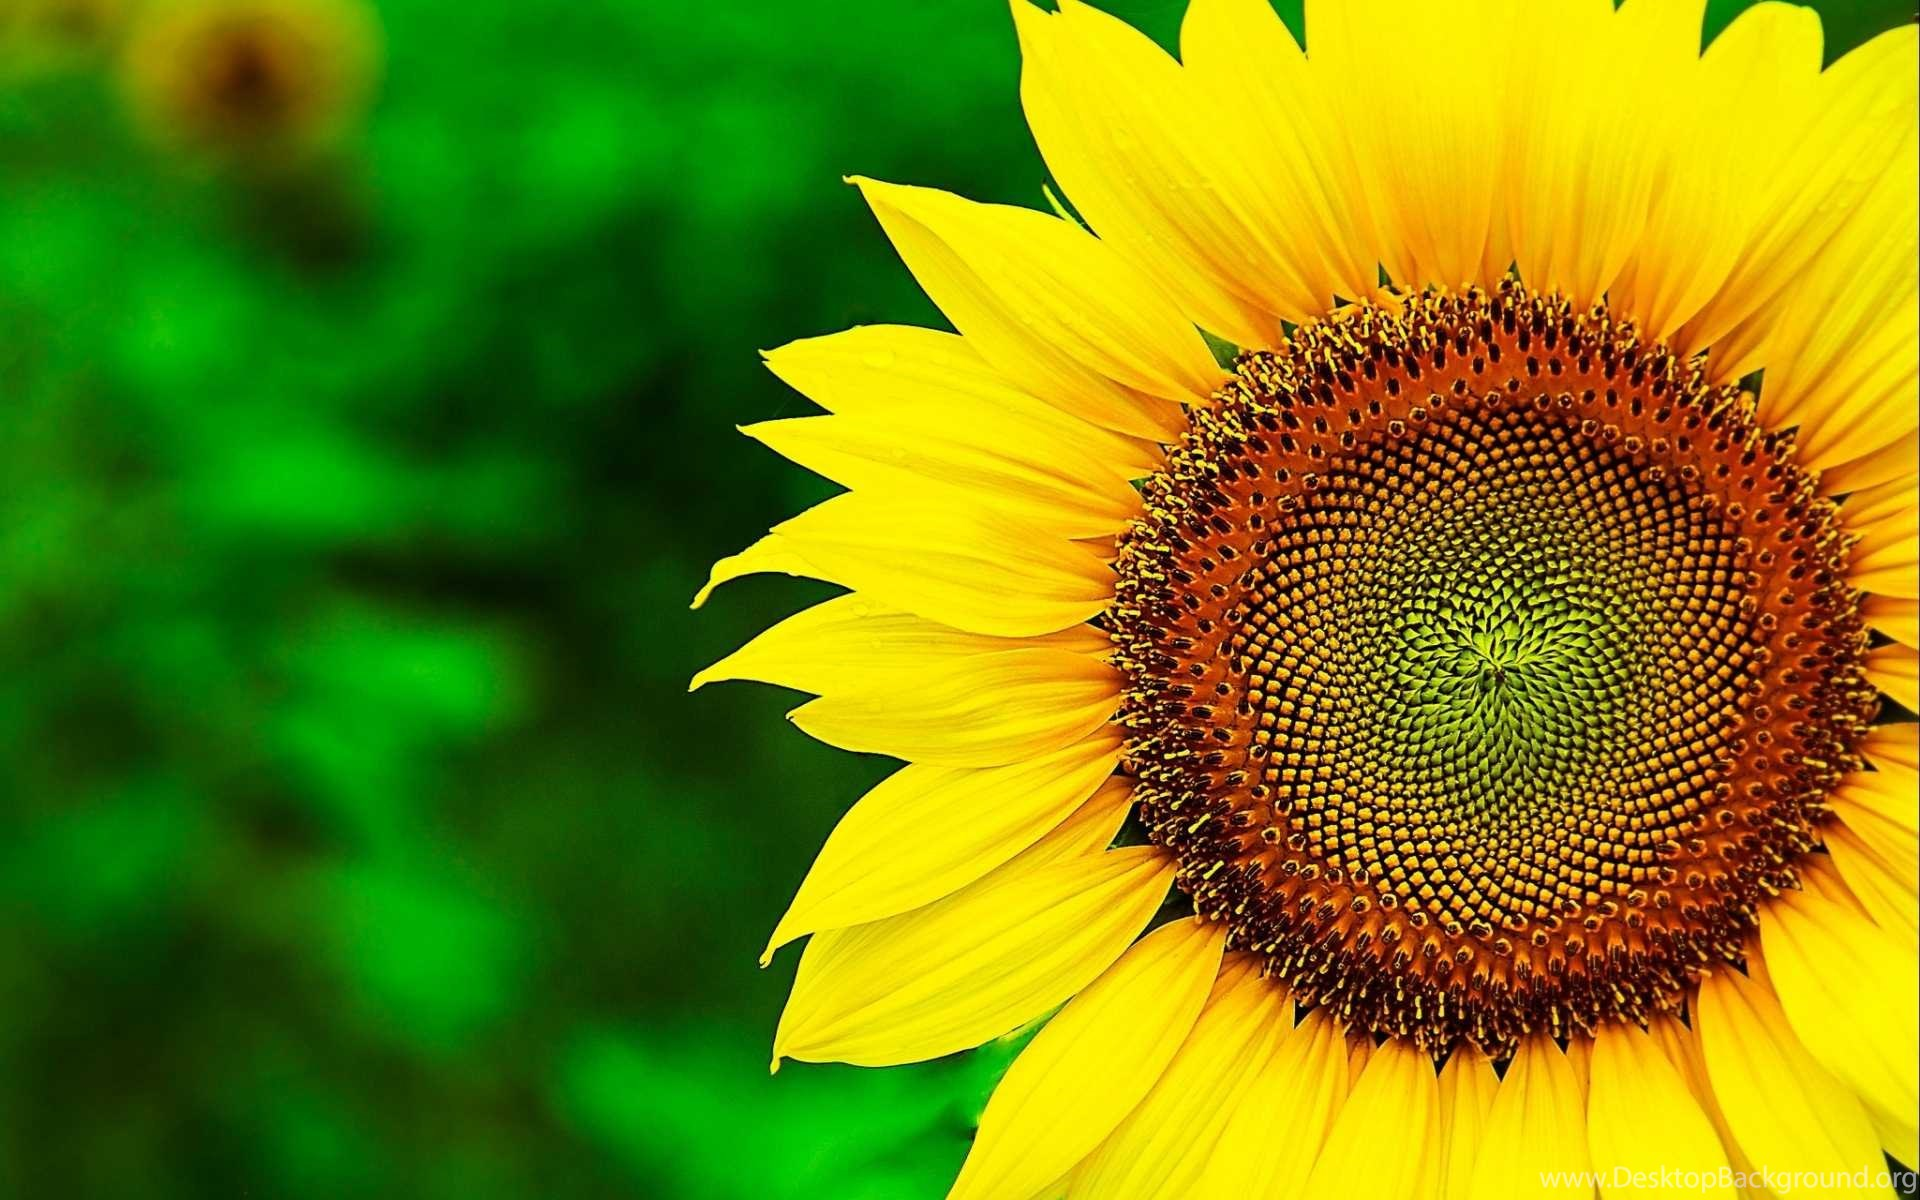 Sunflower Wallpapers HD Best Collection Of Yellow Flowers Desktop